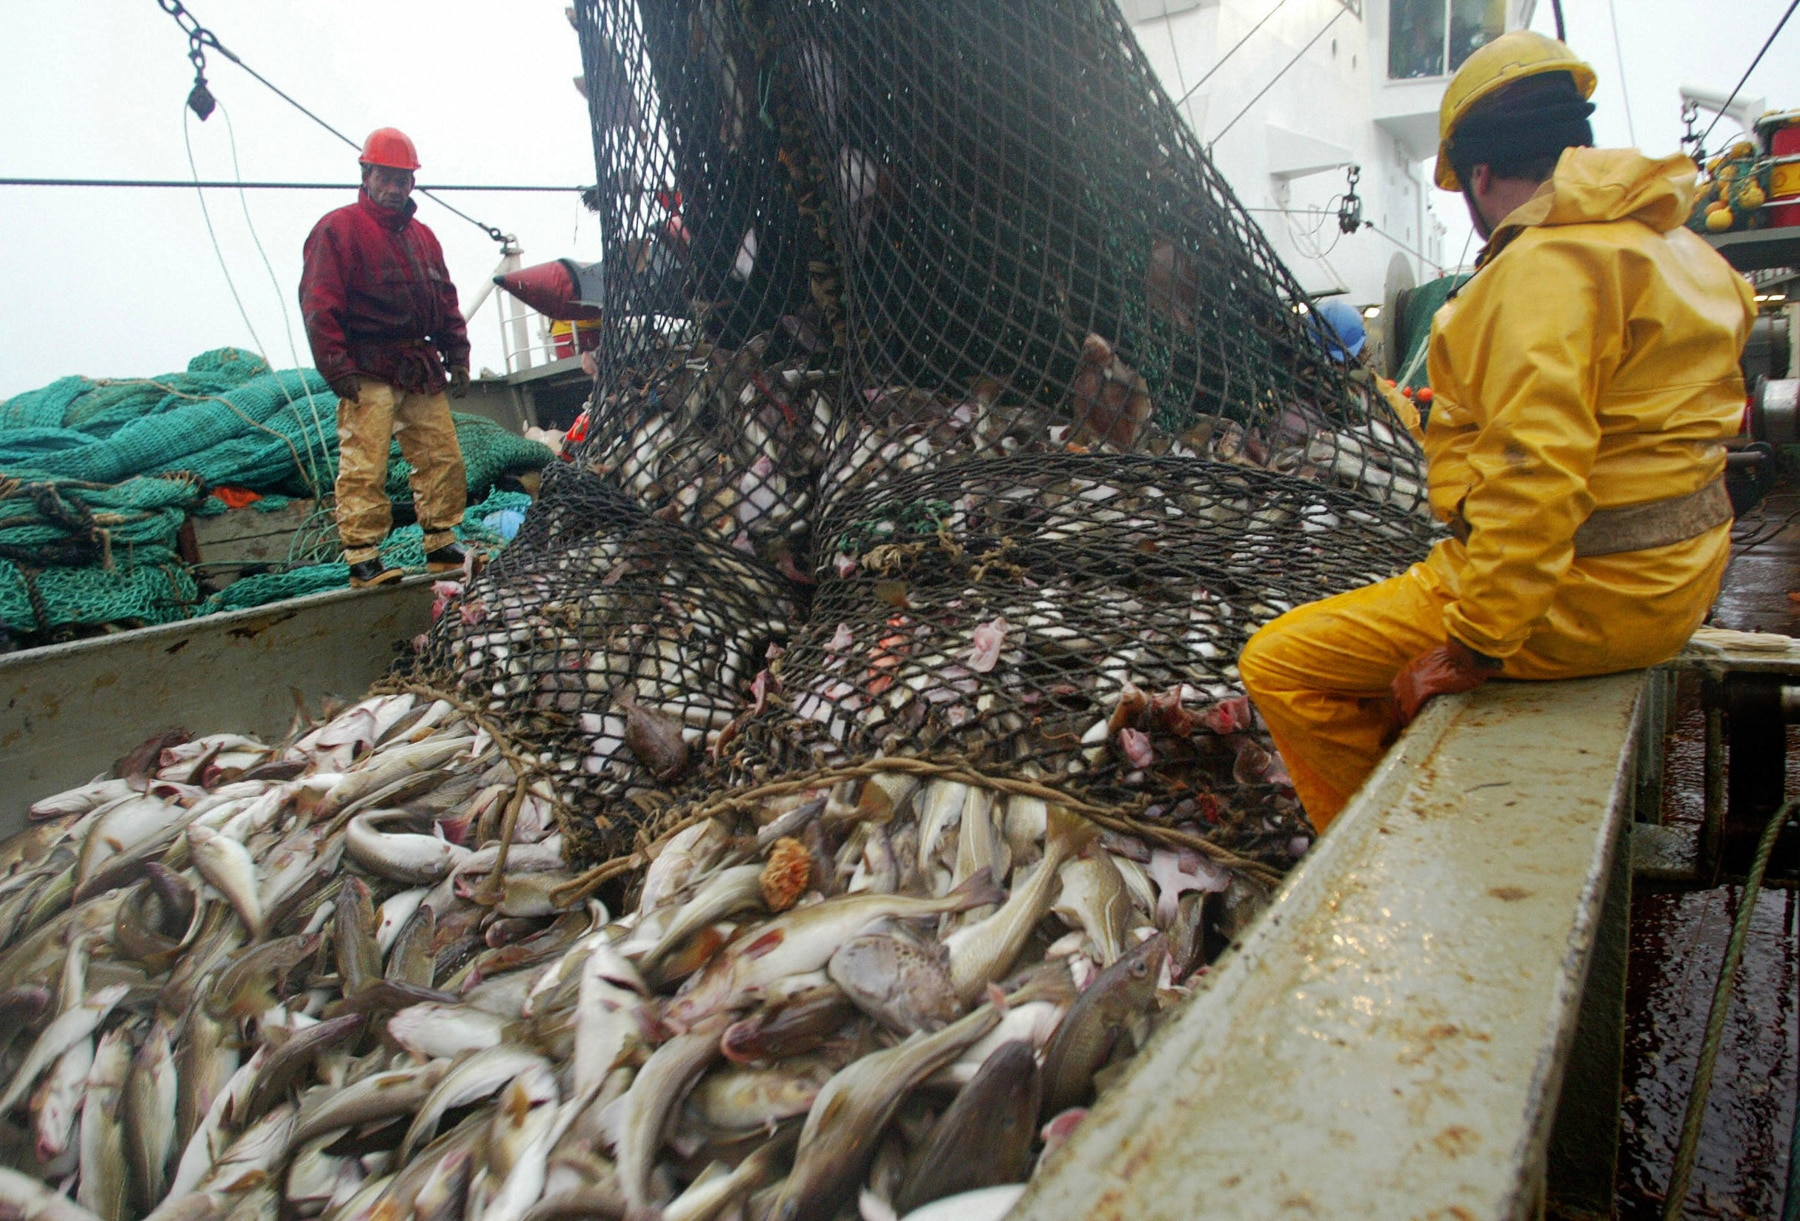 Two people on deck of boat filled with fish (© Marcel Mochet/AFP/Getty Images)